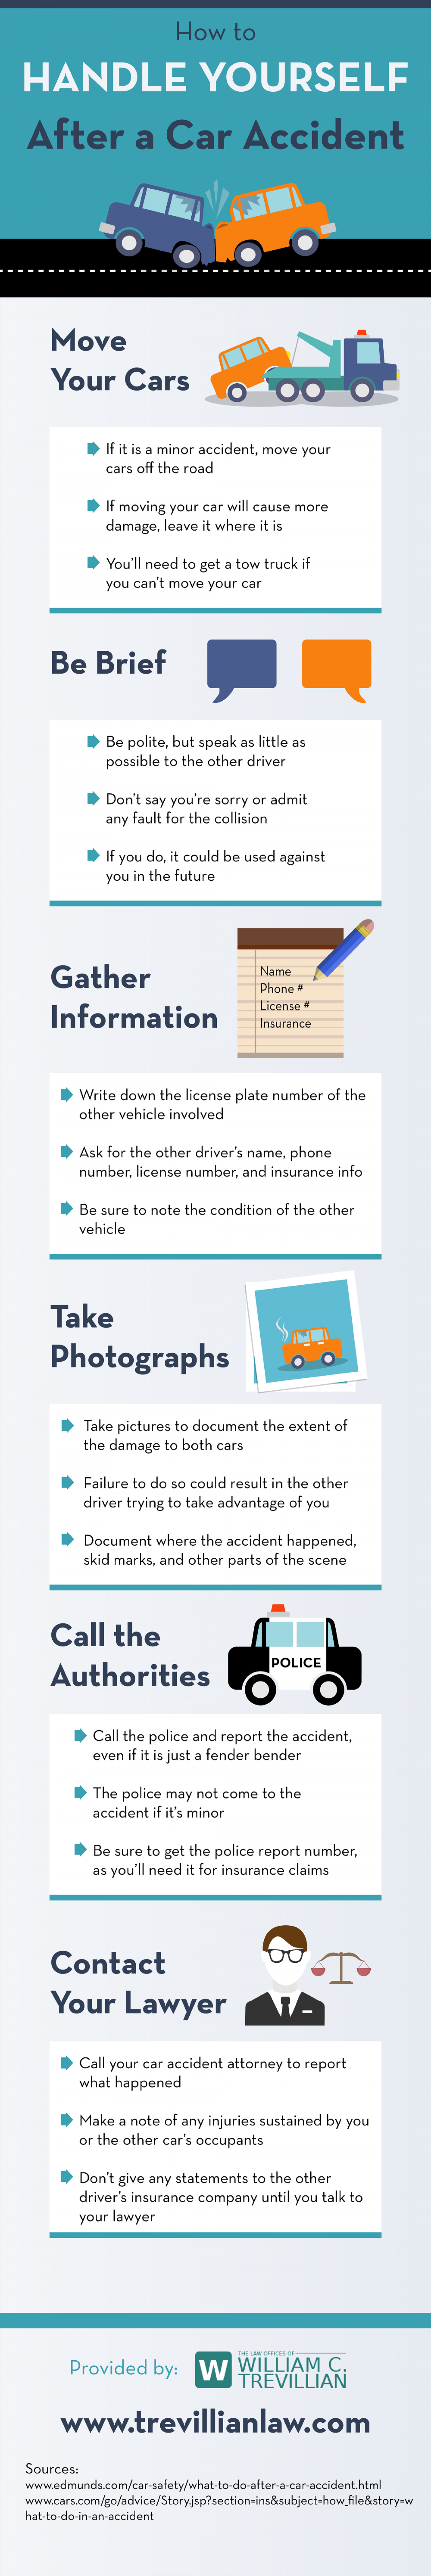 How to Handle Yourself After a Car Accident Infographic